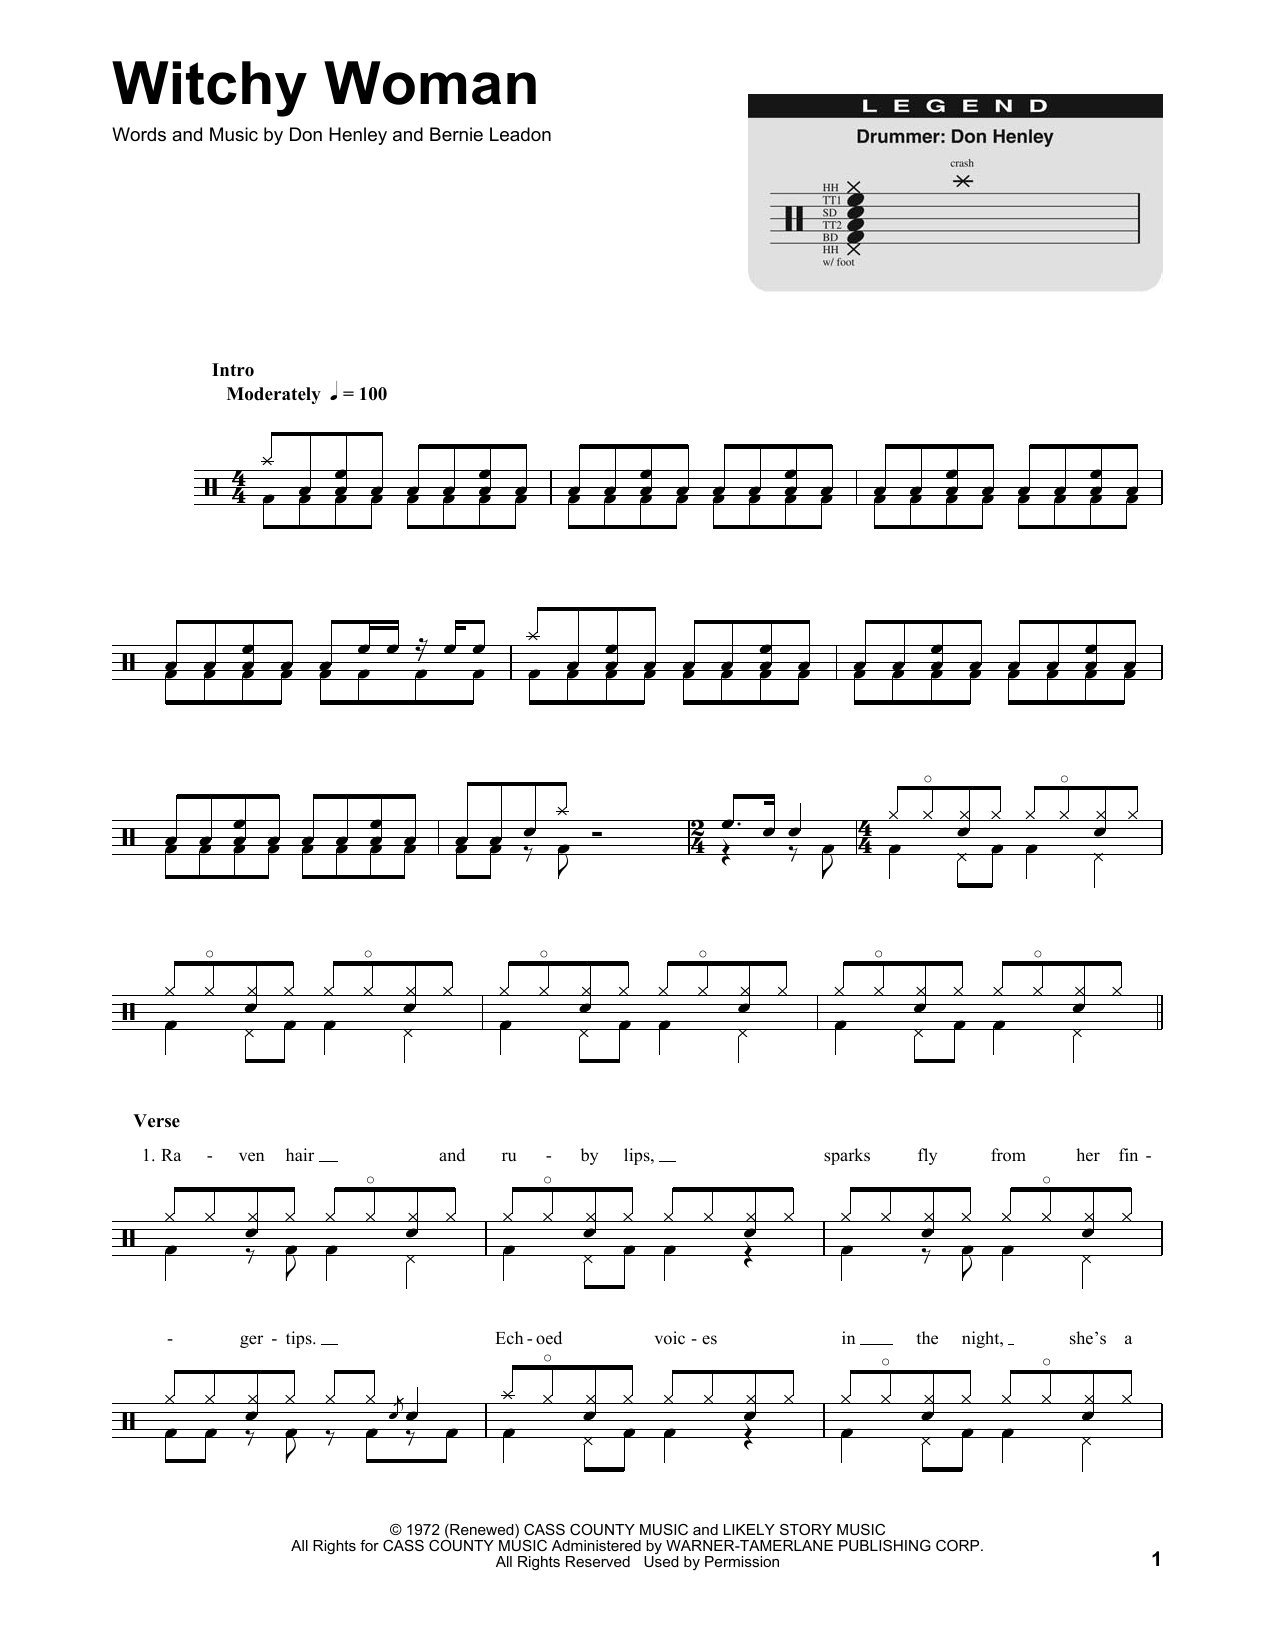 Witchy Woman Sheet Music